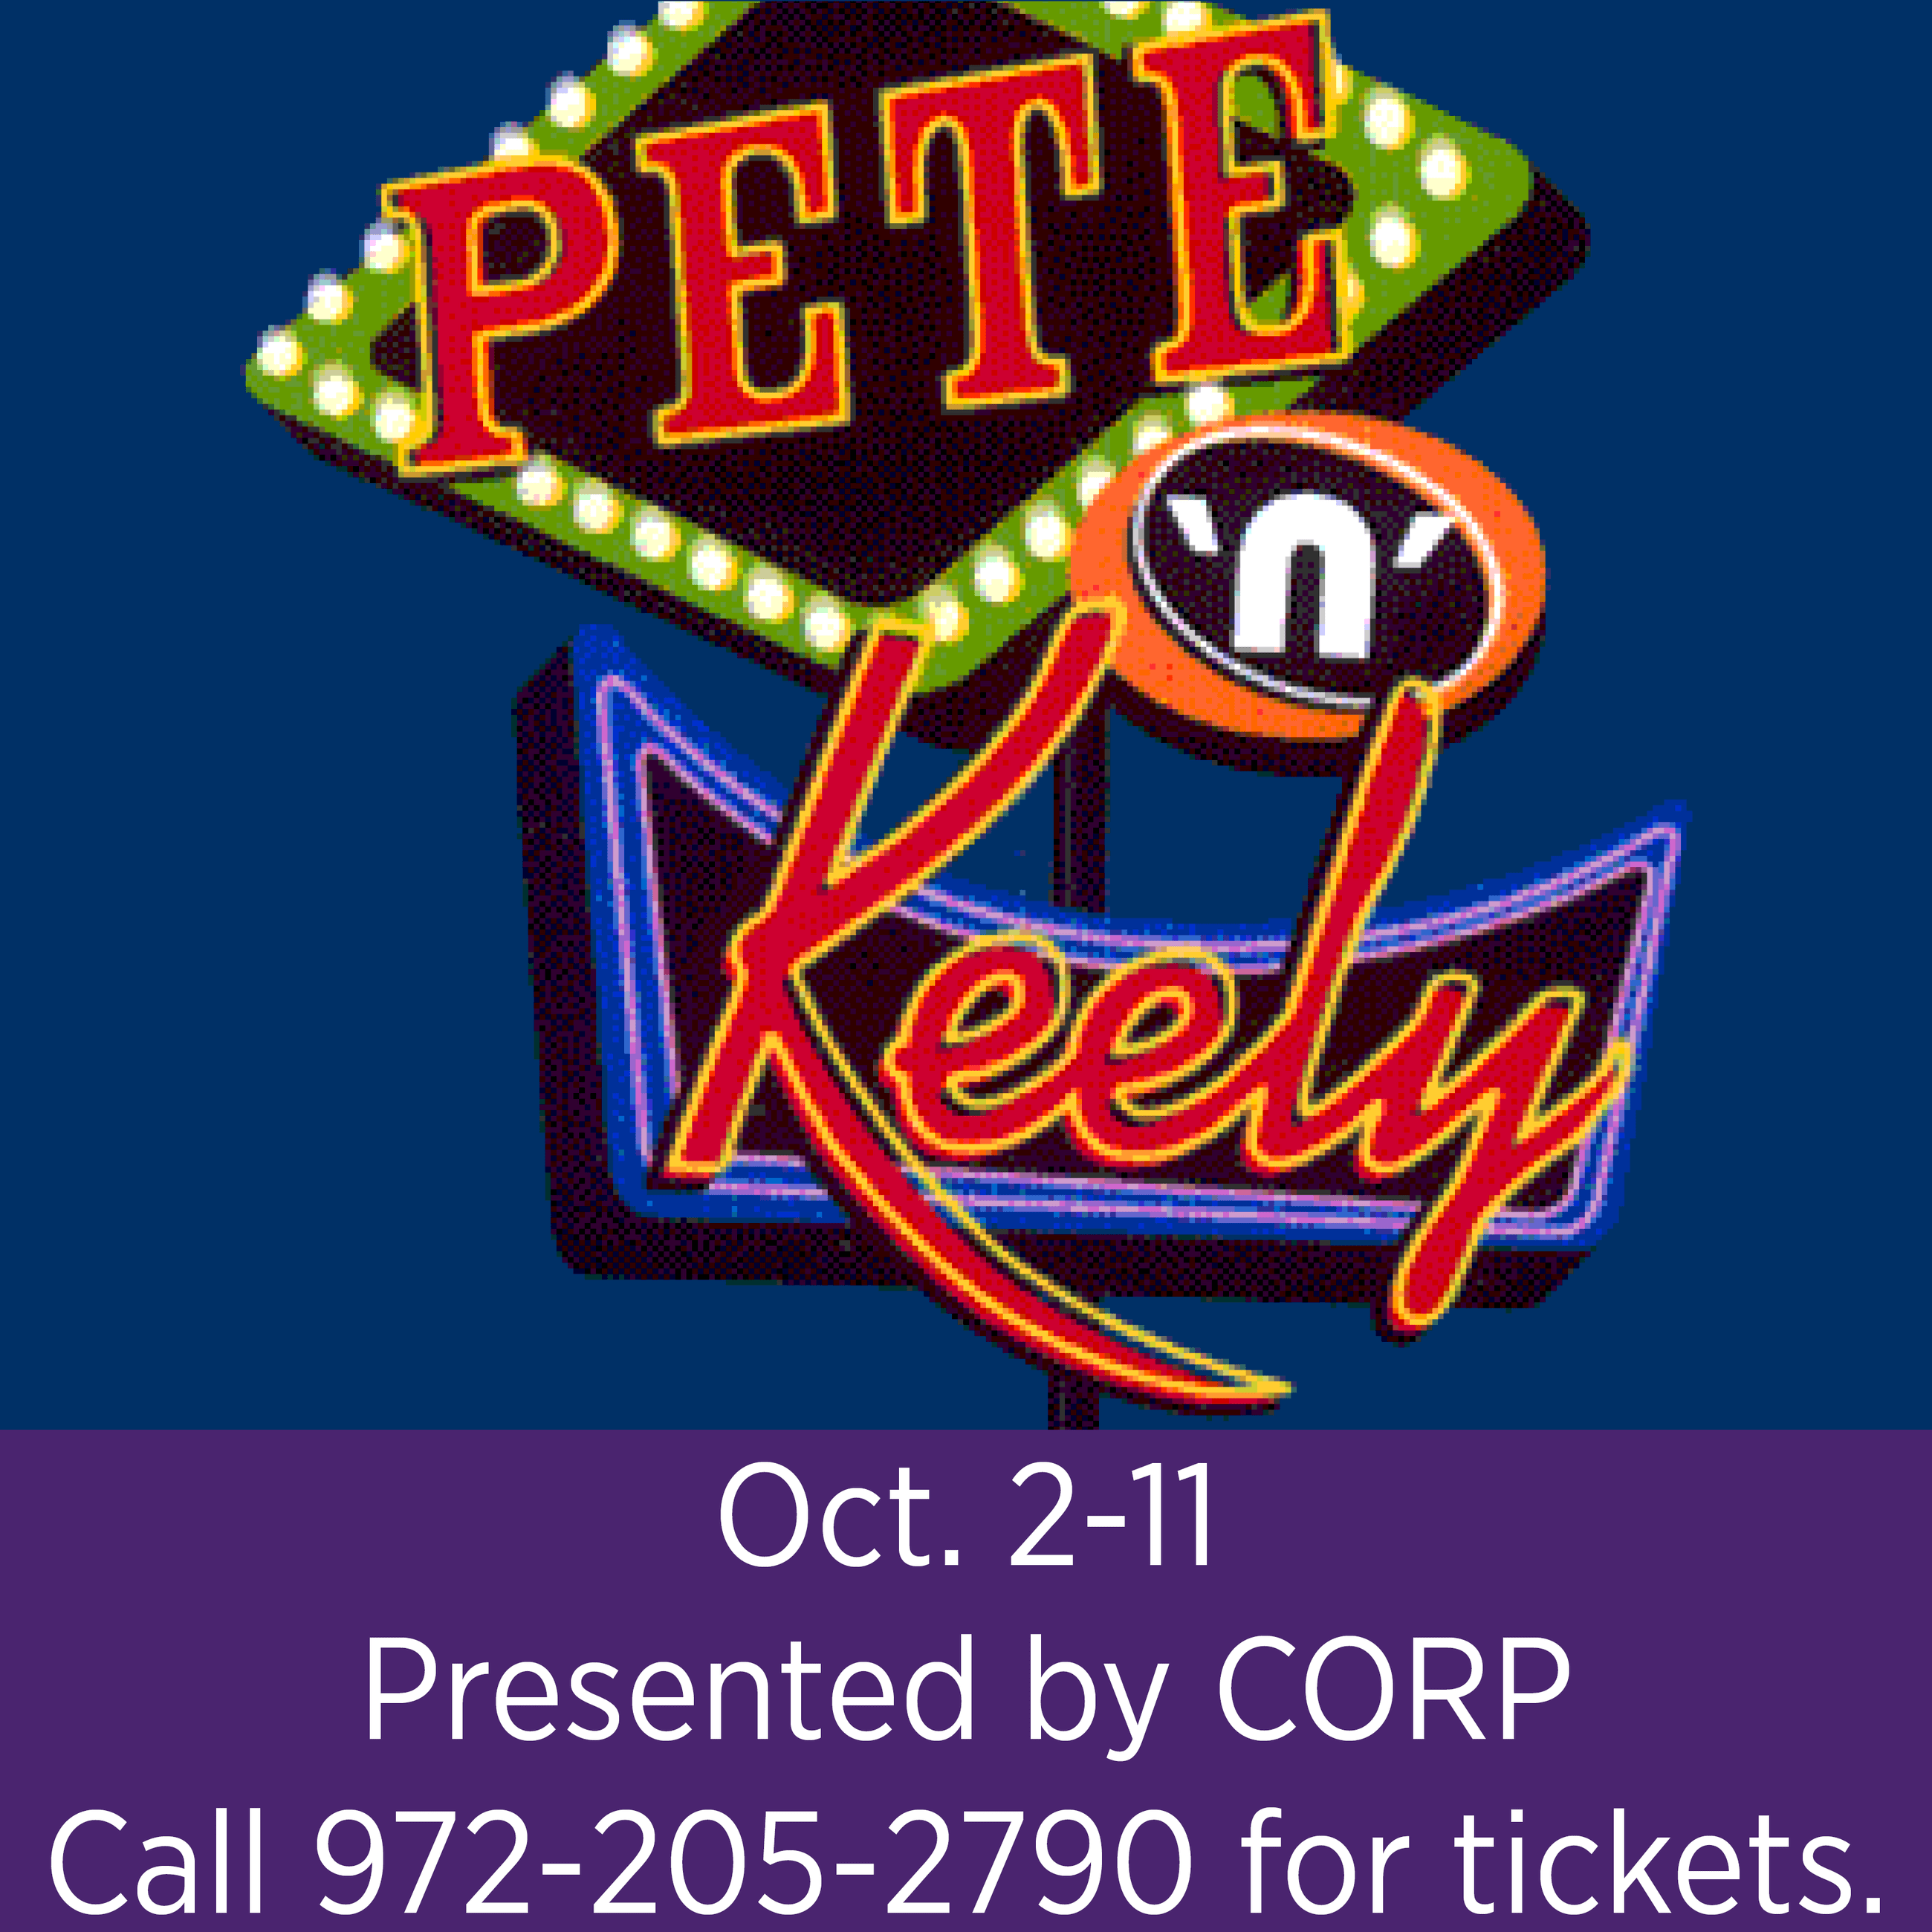 """Pete 'n' Keely"" - Call 972-205-2790 for tickets."